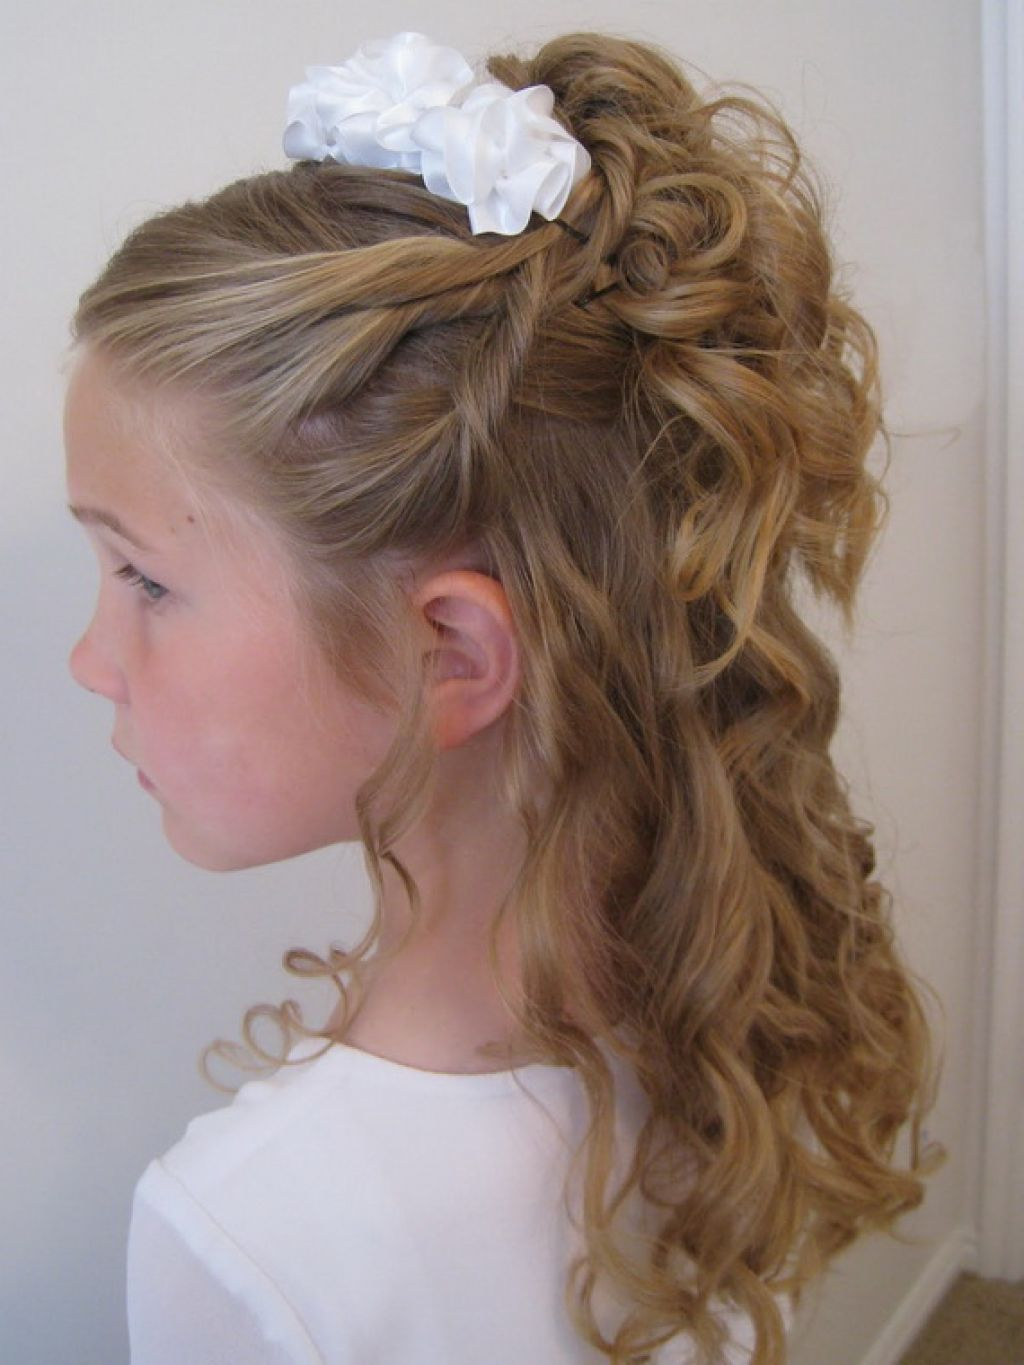 20 Wedding Hairstyles For Kids Ideas